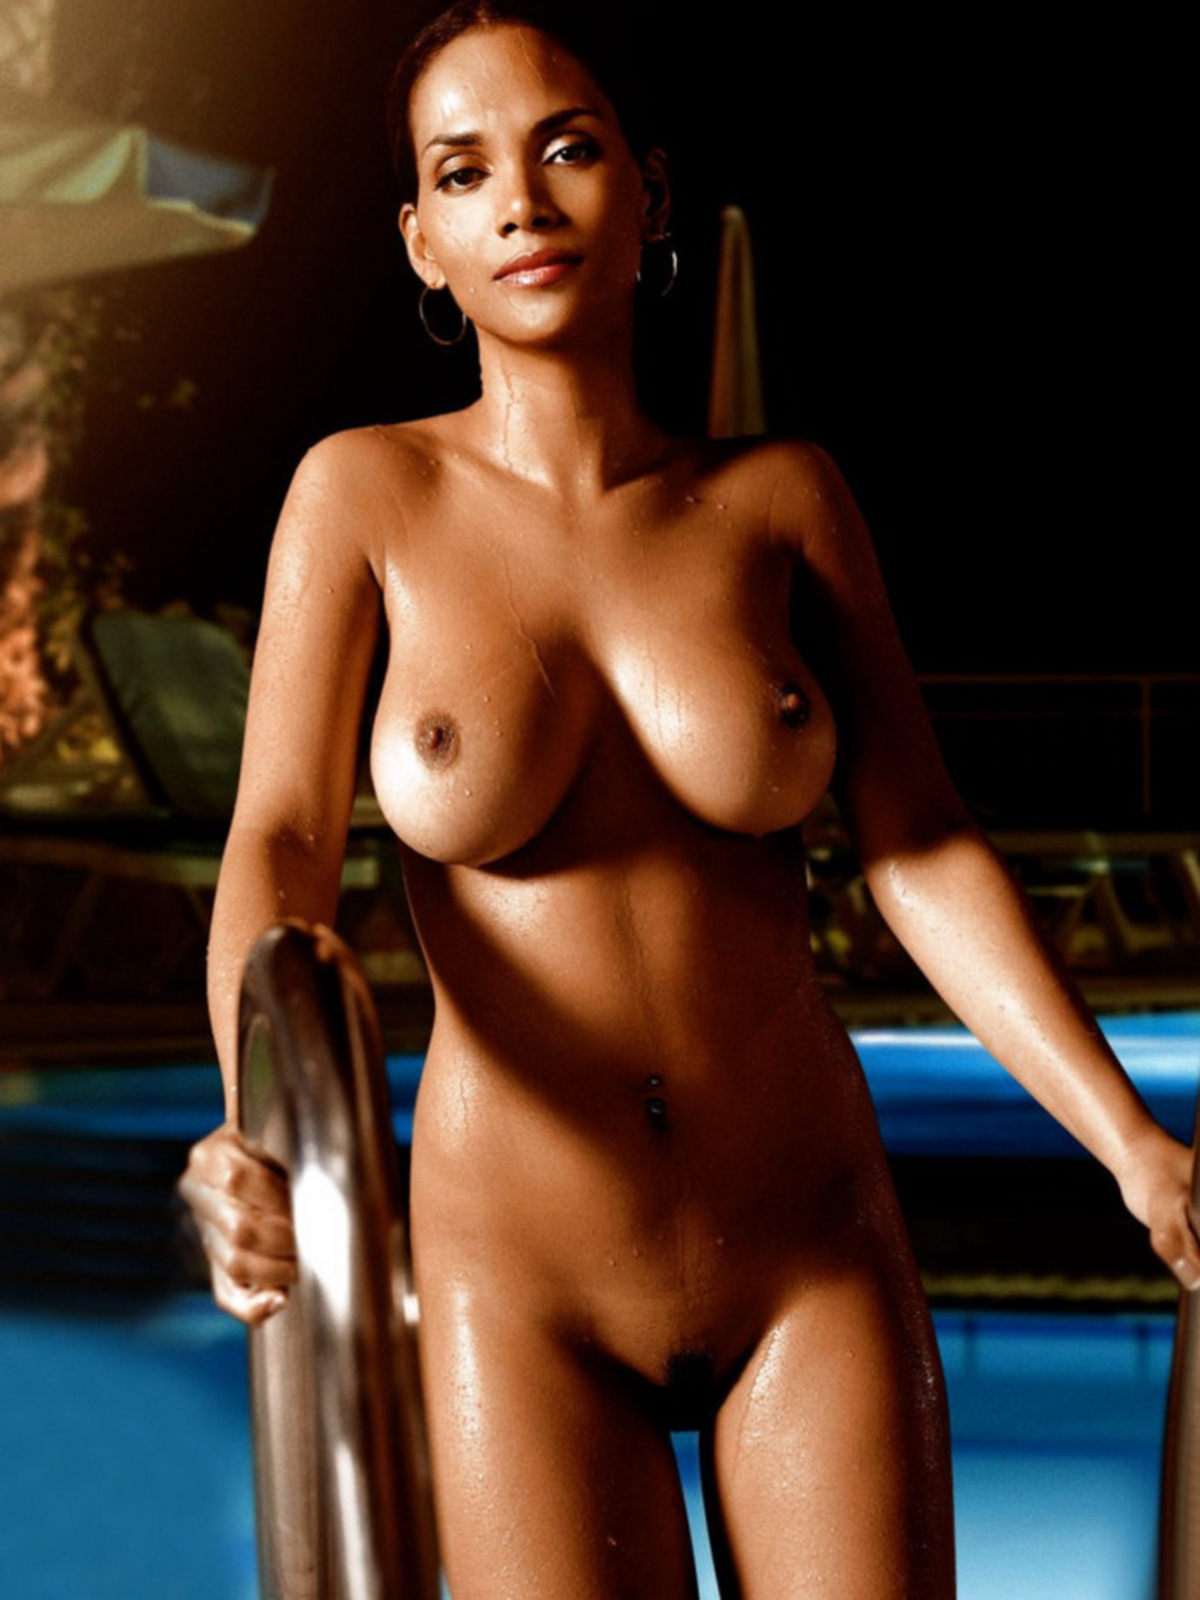 http://4.bp.blogspot.com/_Jgc-vQ1t70k/TOYgulb8EqI/AAAAAAAAATE/6tBp8K390G4/s1600/Halle_Berry_showing_her_amazing_big_tits_and_pussy_Playboy.jpg